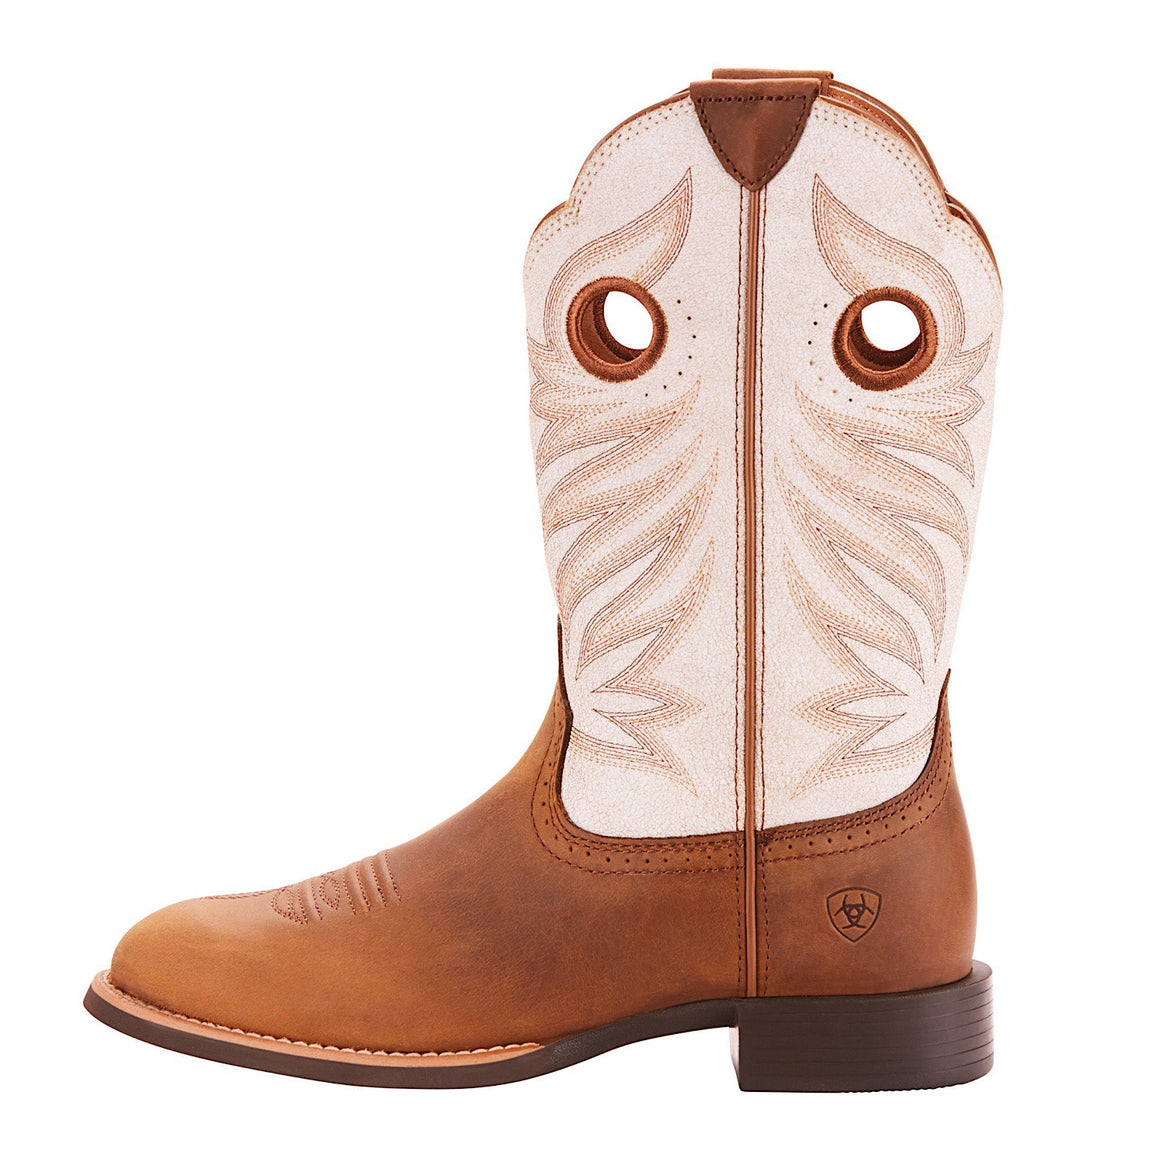 Ariat Women's Round Up Stockman Crushed Peanut/Birch